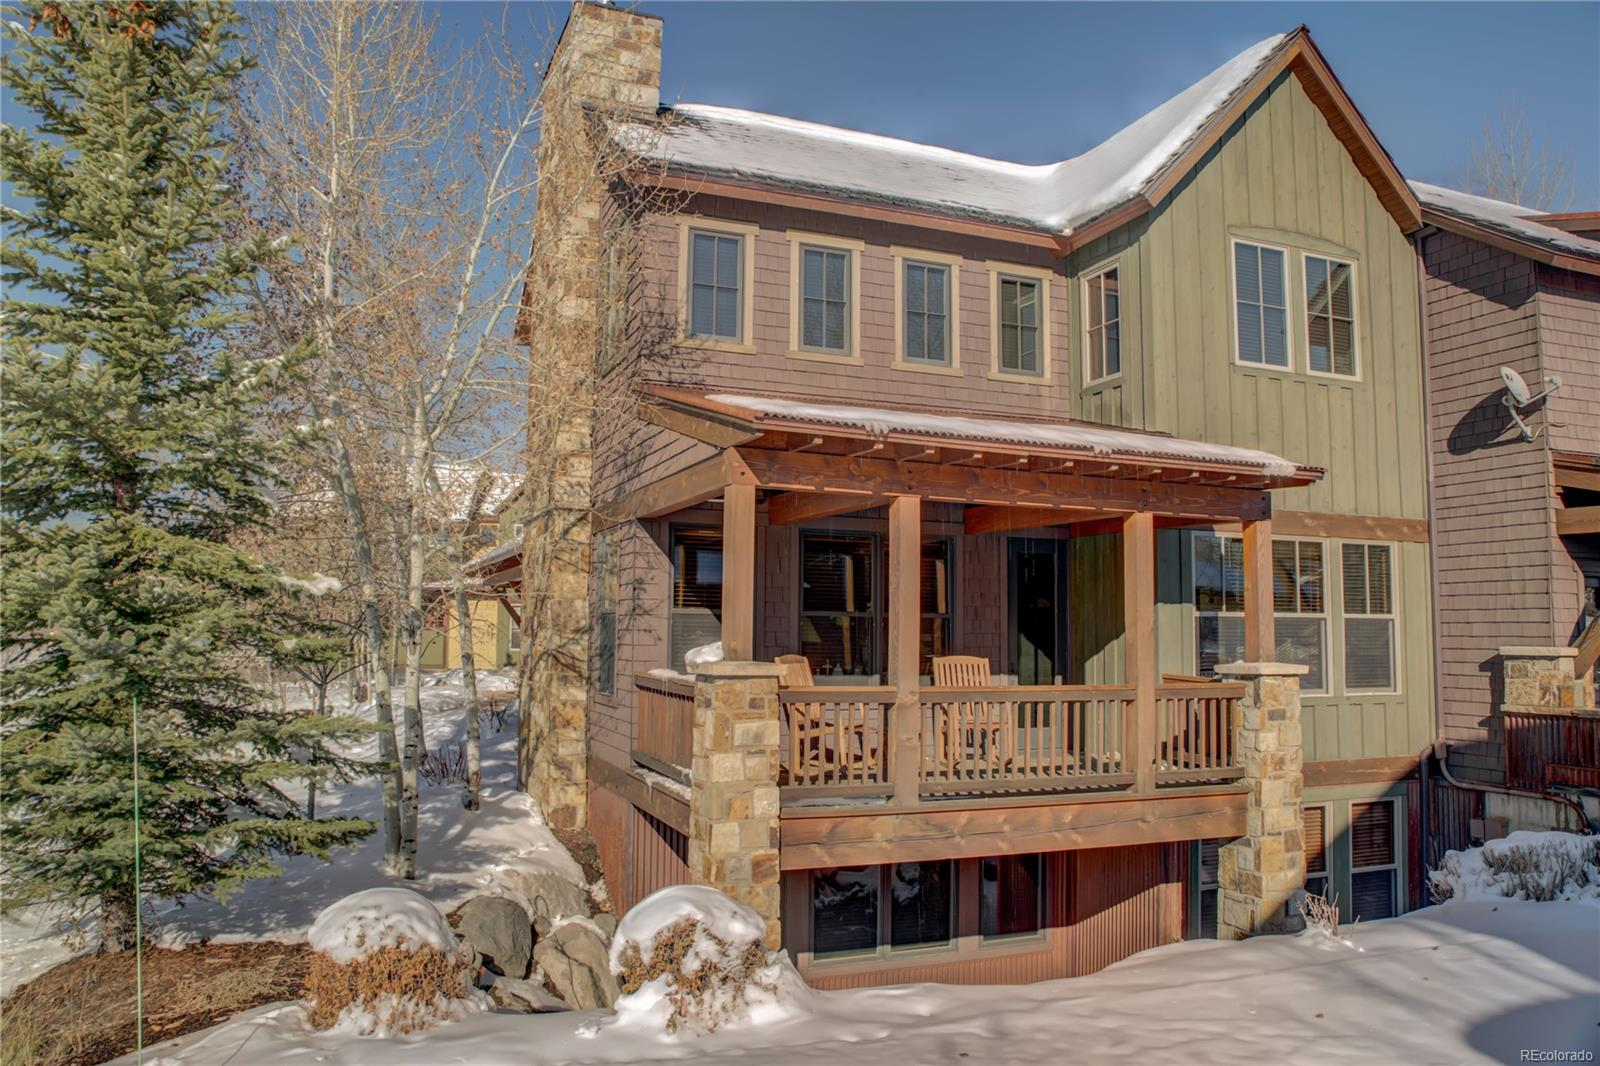 2095 Indian Summer Drive, Steamboat Springs, CO 80487 - Steamboat Springs, CO real estate listing